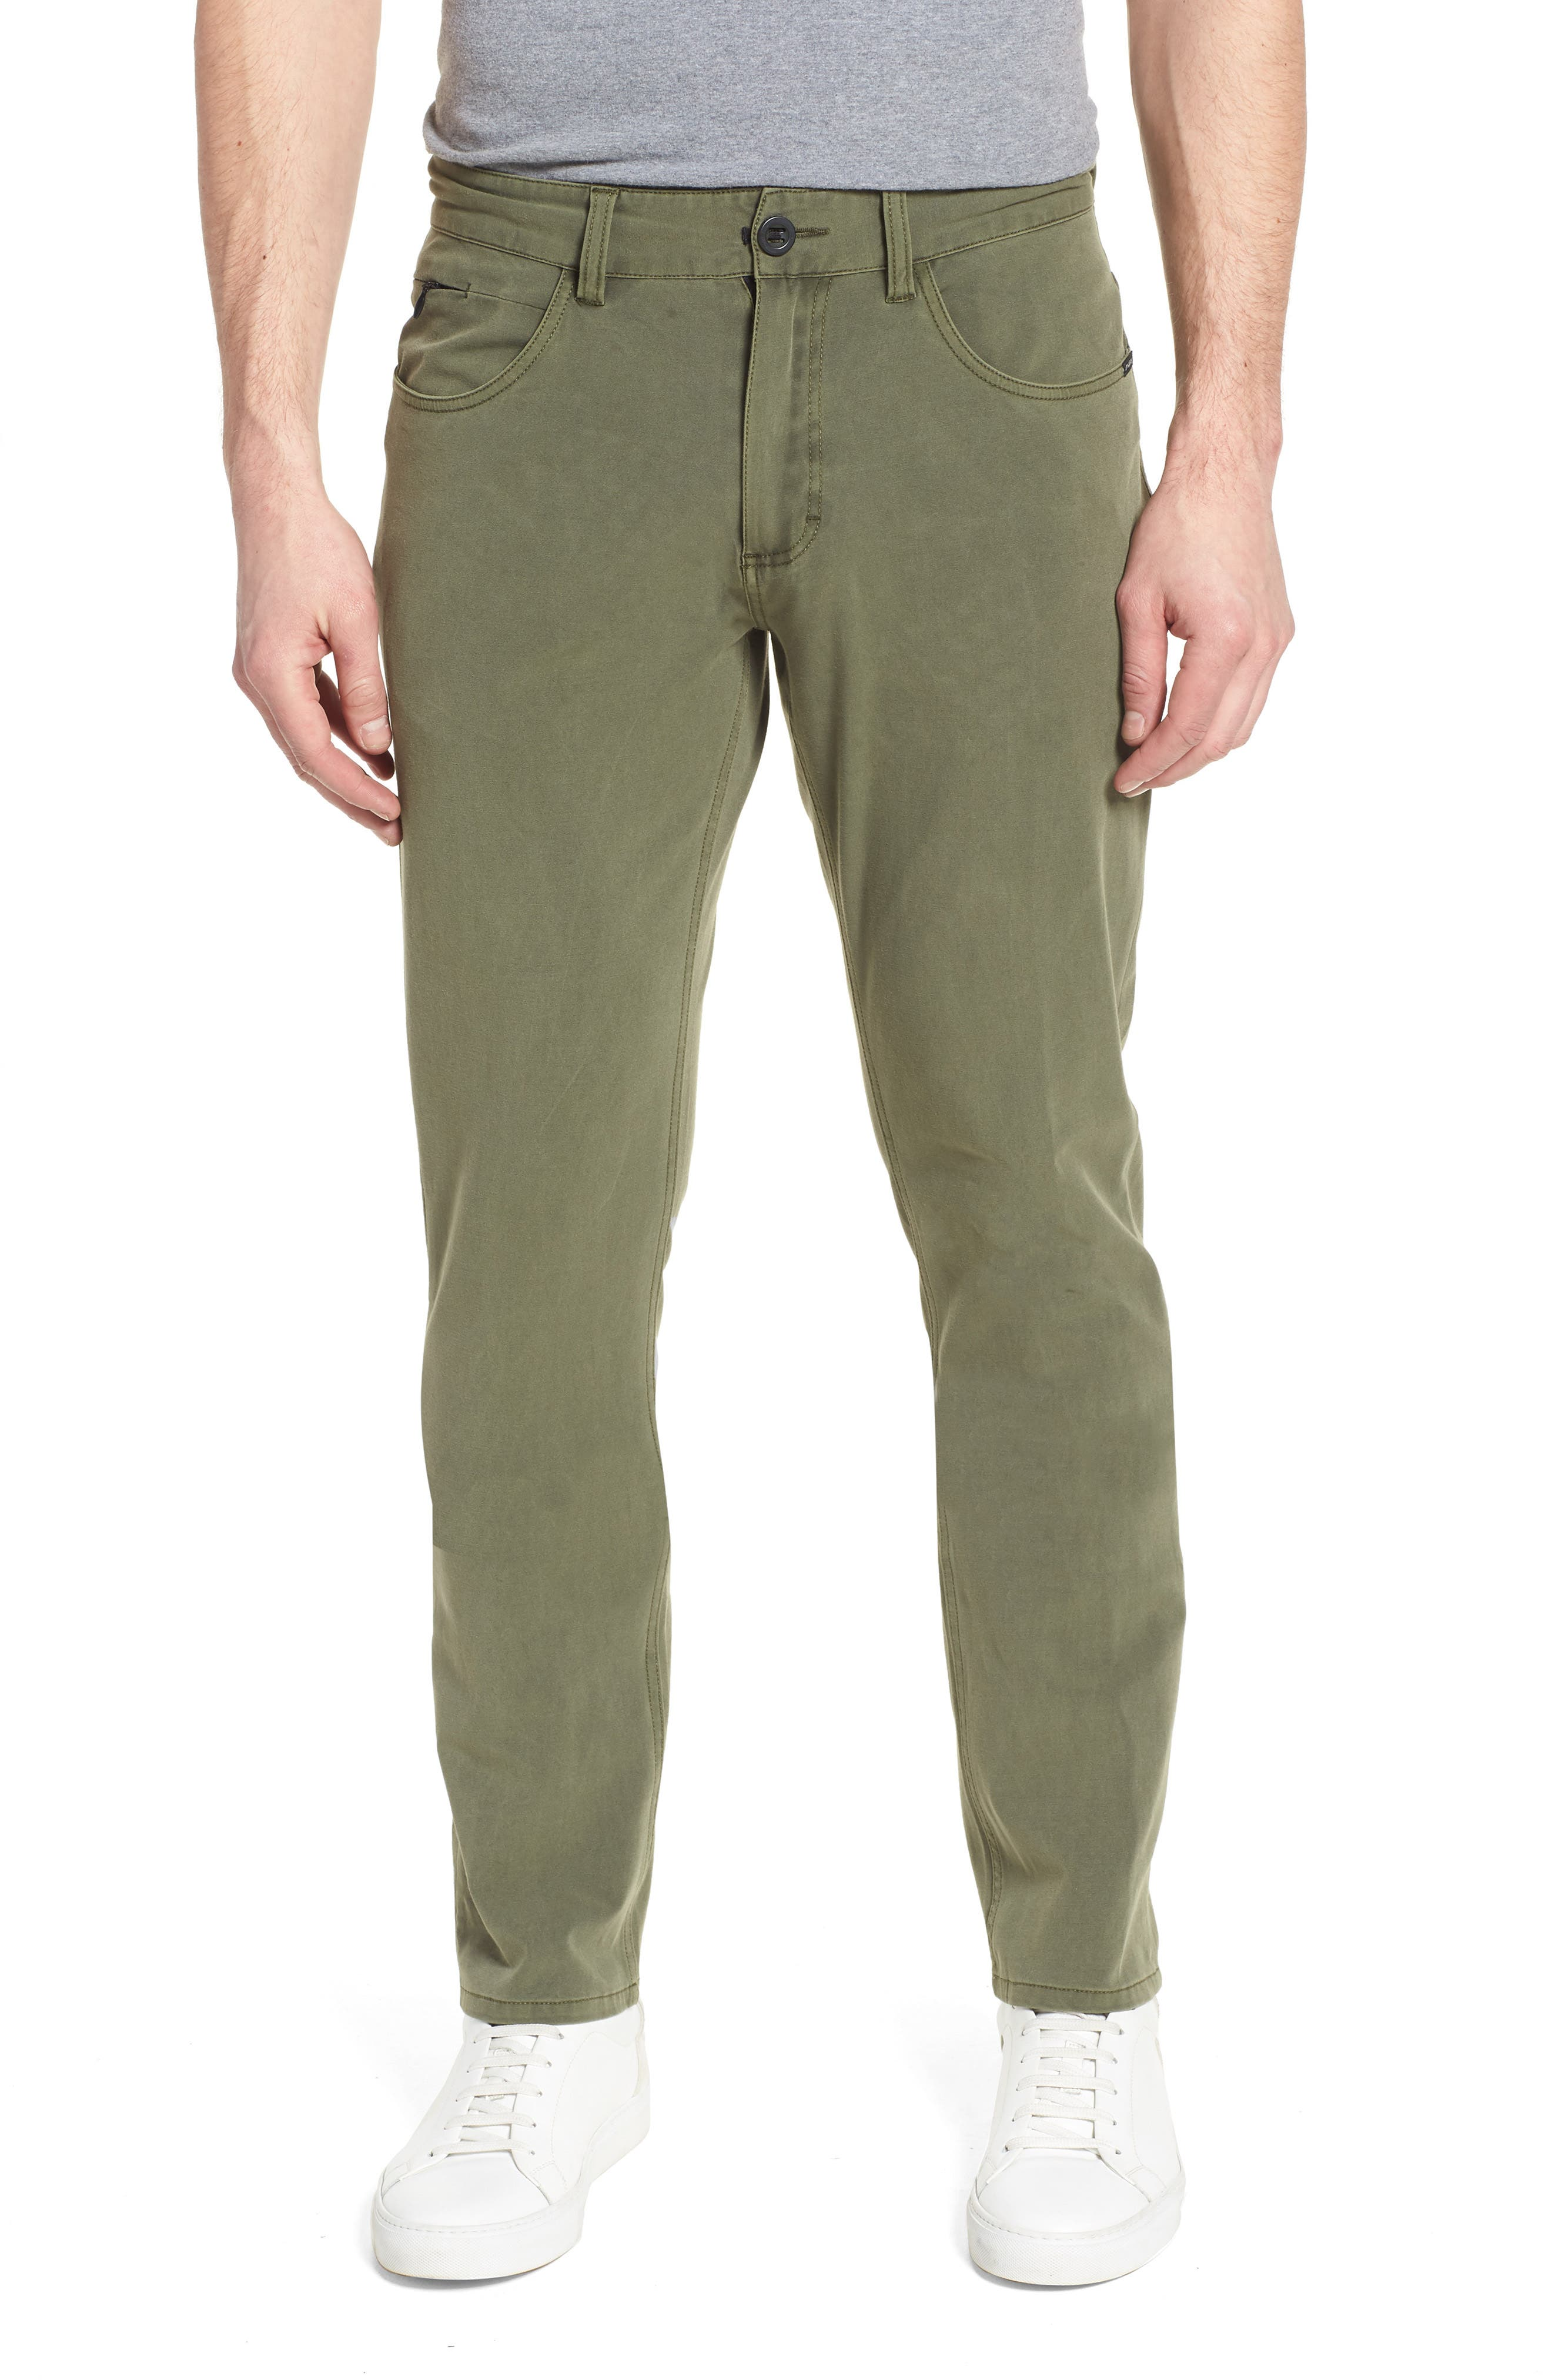 Venture Slim Fit Hybrid Pants,                             Main thumbnail 1, color,                             Army